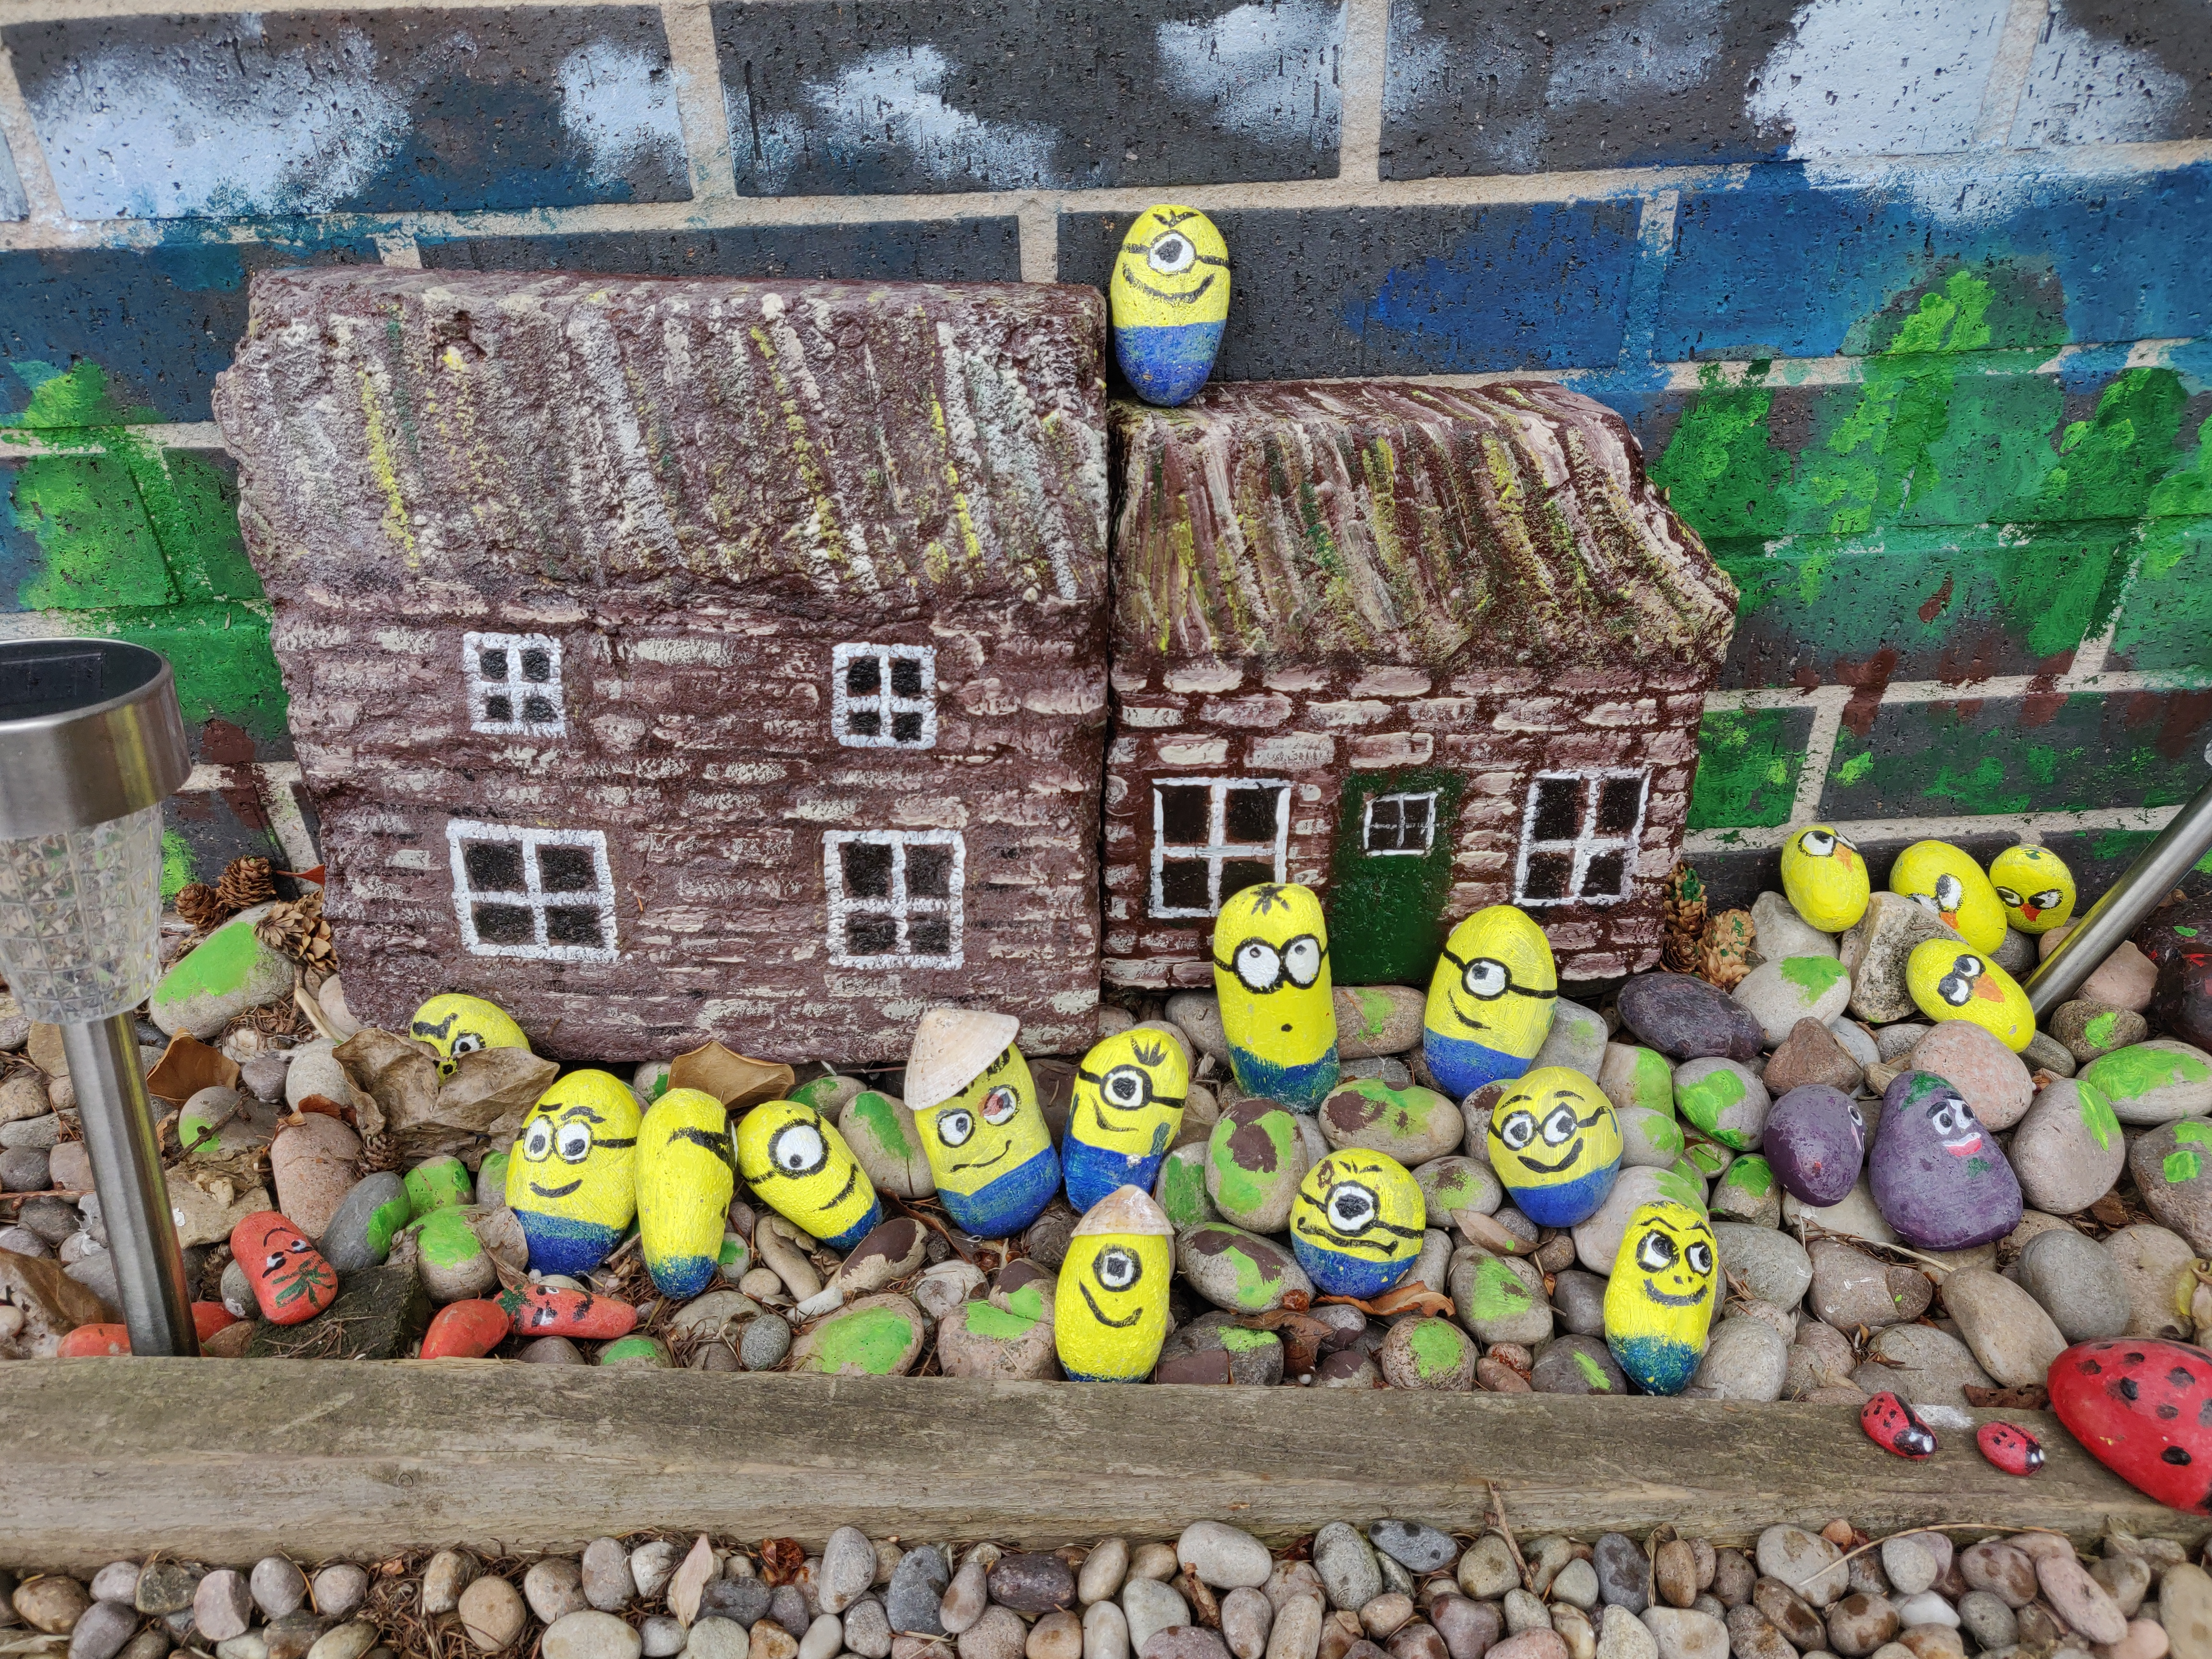 Stones painted to look like Minions